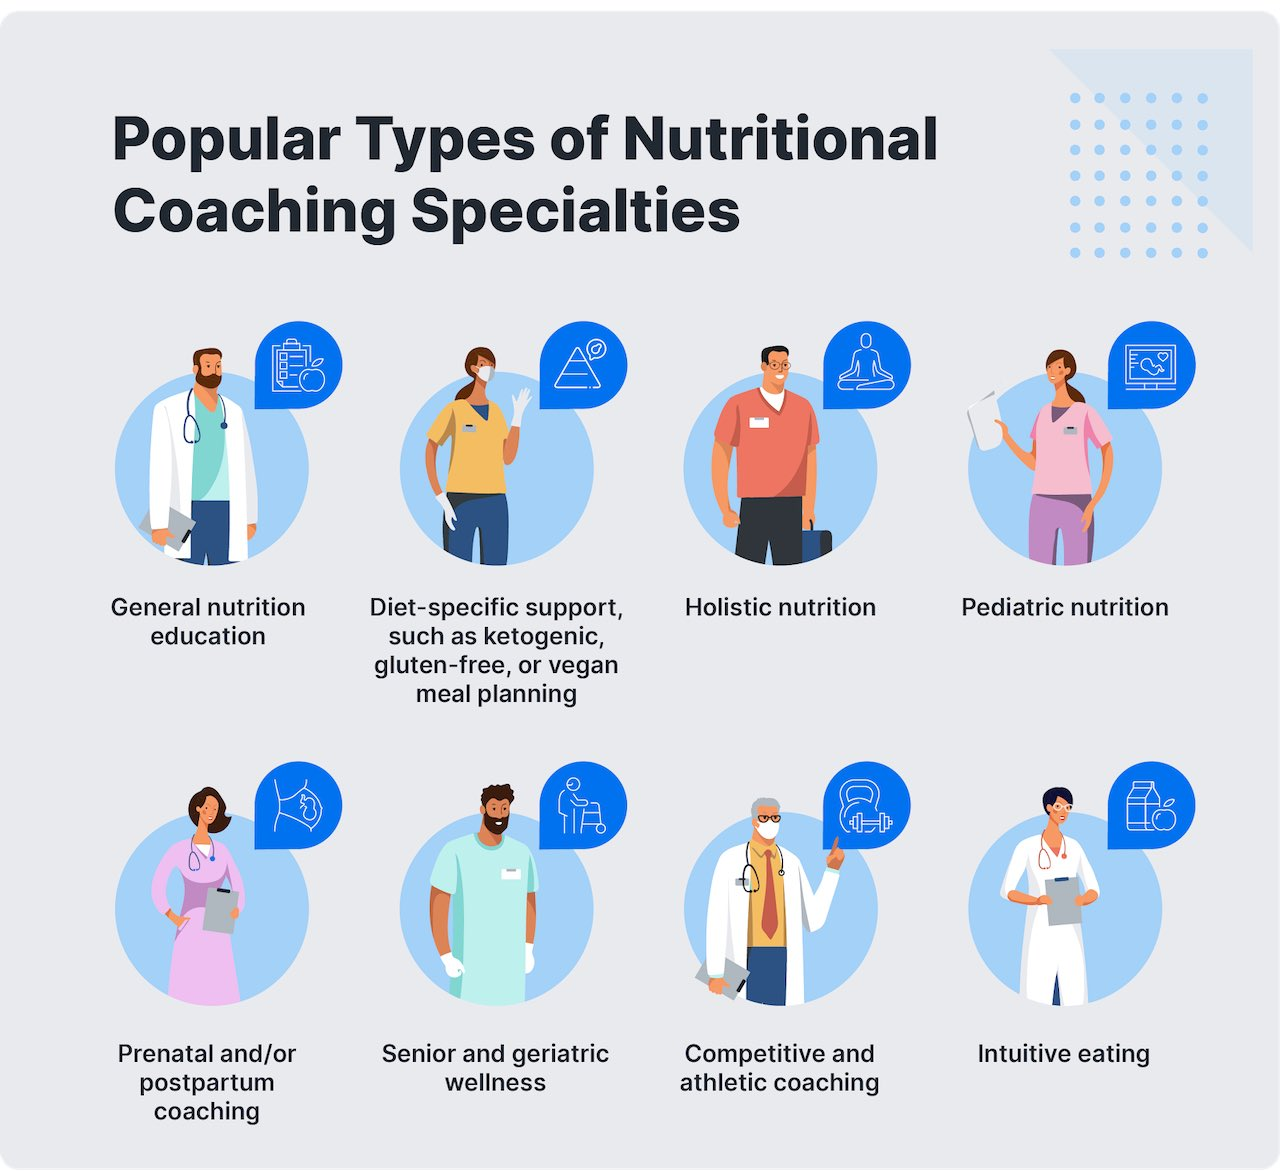 Different nutrition coach specialties with practitioners of each kind